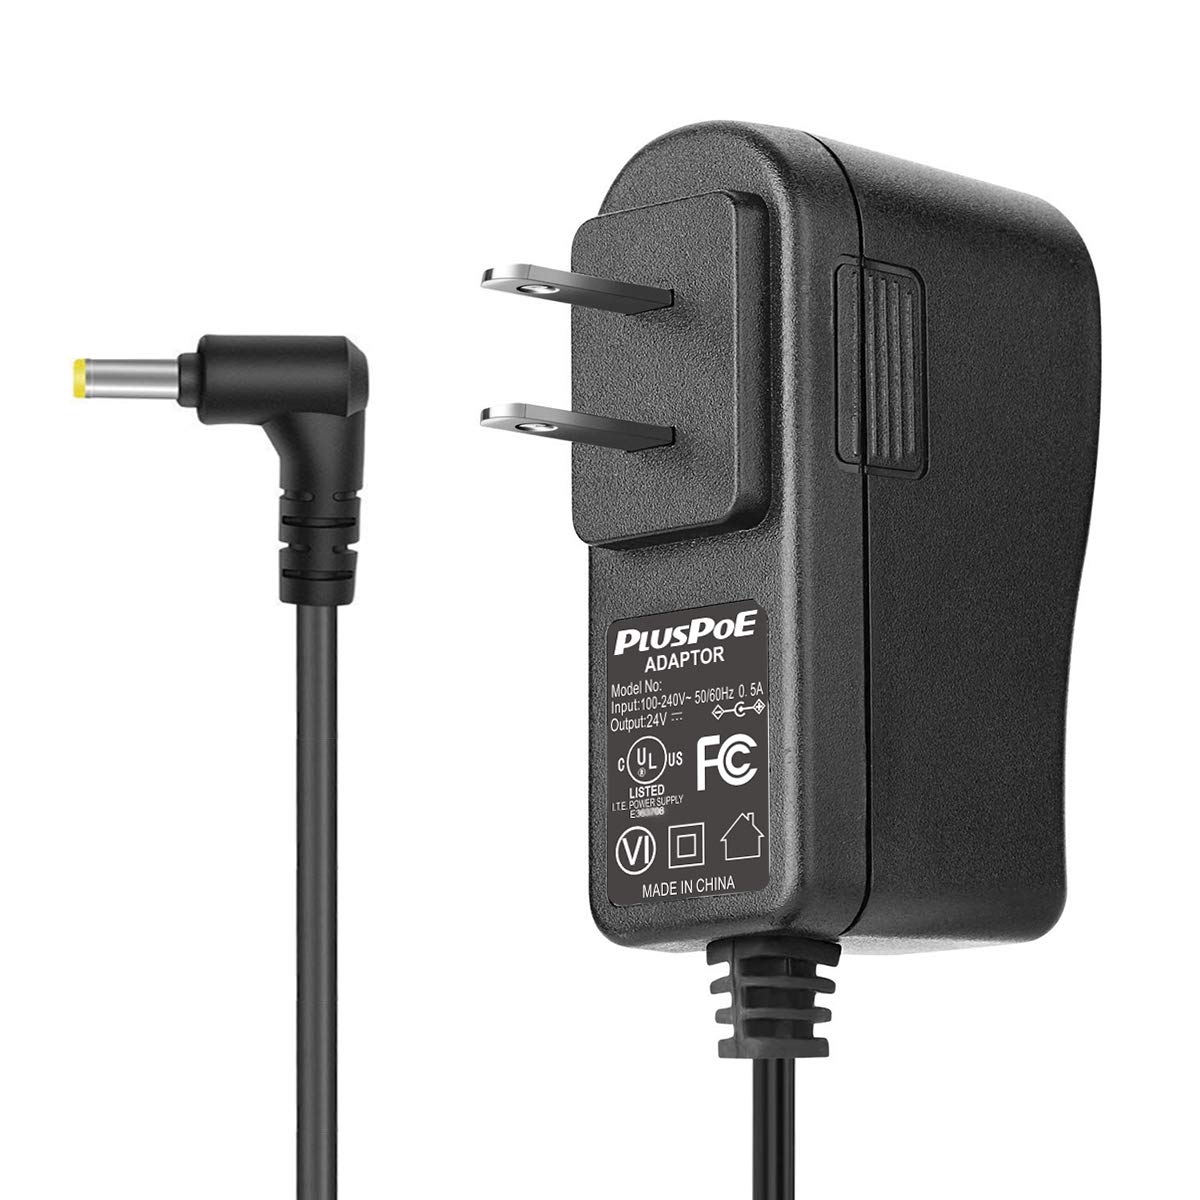 24V Wall Adapter, PLUSPOE AC DC Adaptor Power Supply Replacement Cord Cable Charger for 100ml / 120ml / 300ml / 500ml Essential Oil Diffuser 5.9Ft (Black)